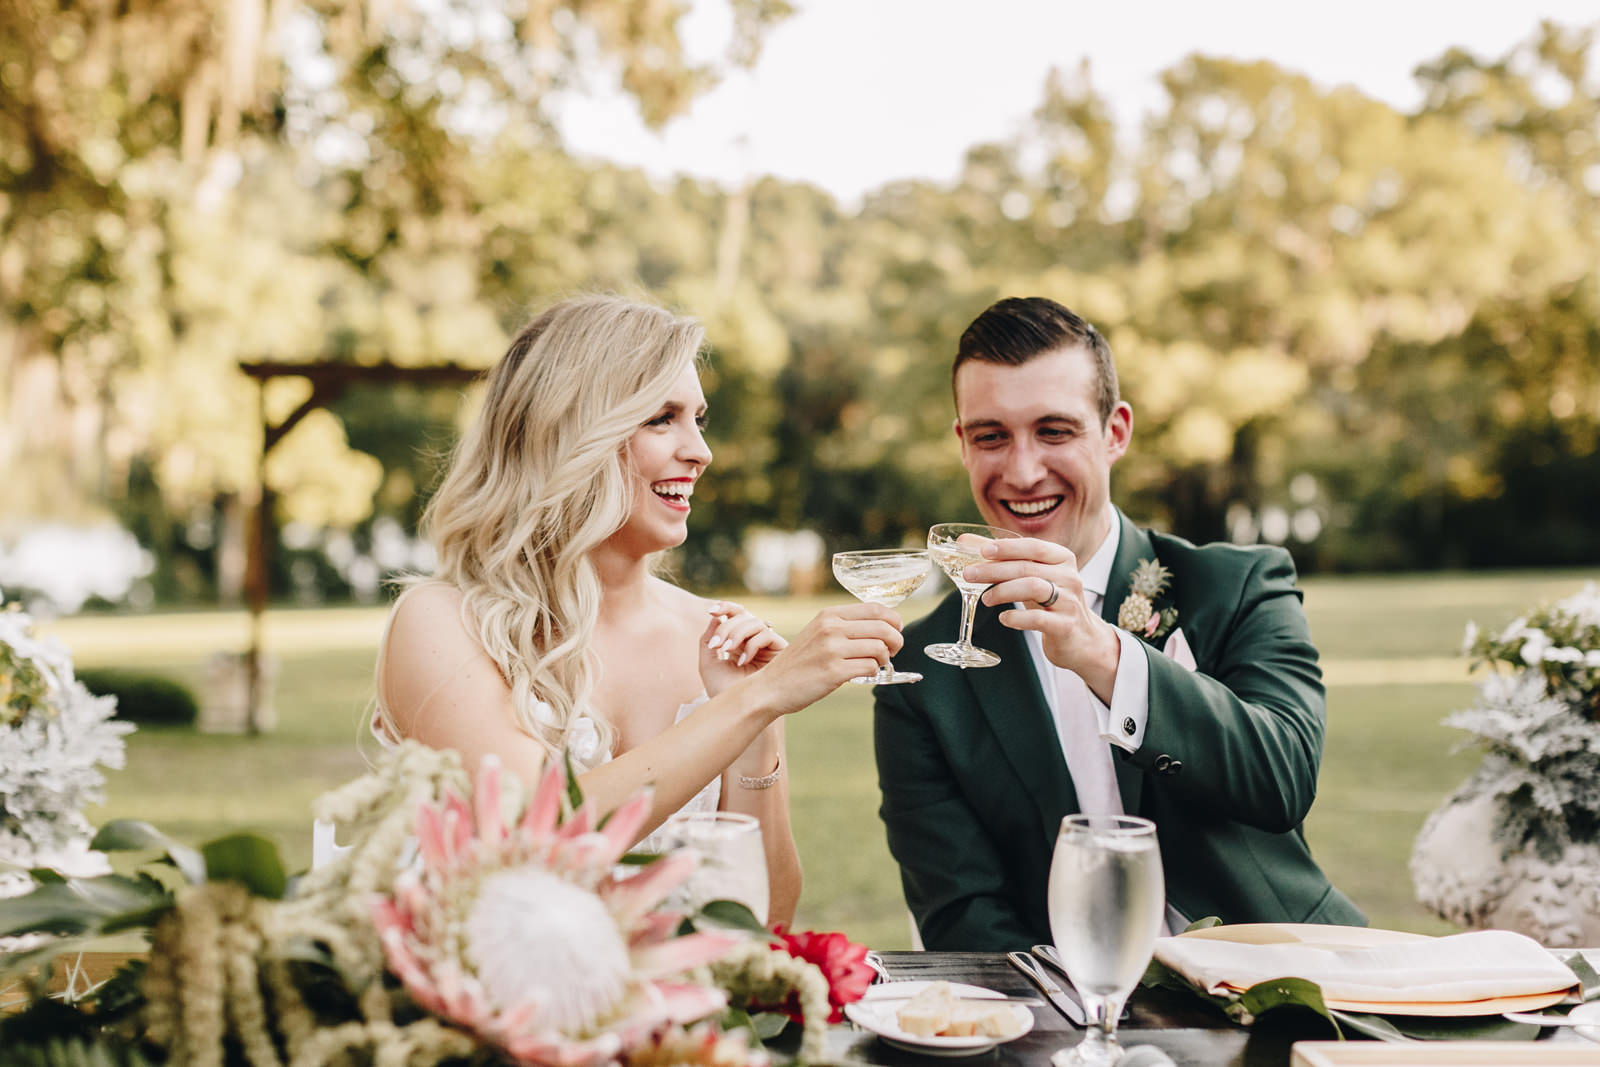 Bride and groom toasting each other at their sweetheart table.